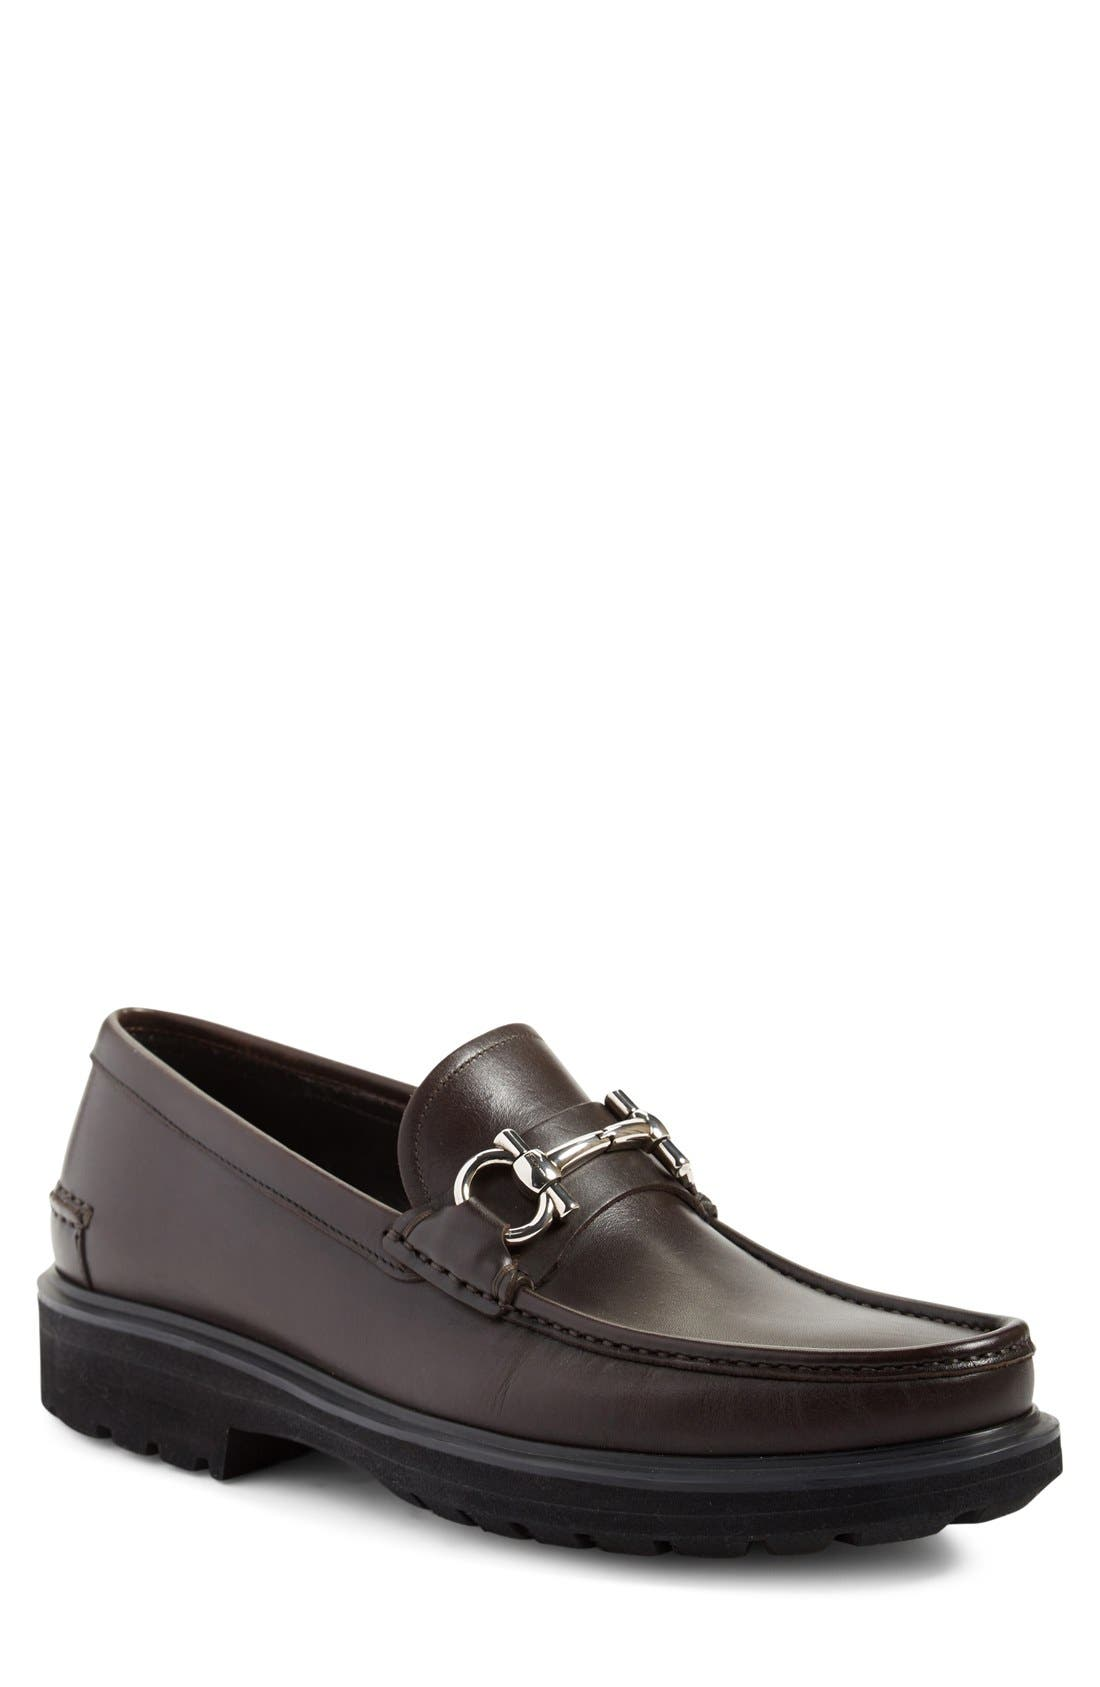 Glasgow Bit Loafer,                             Main thumbnail 1, color,                             Hickory